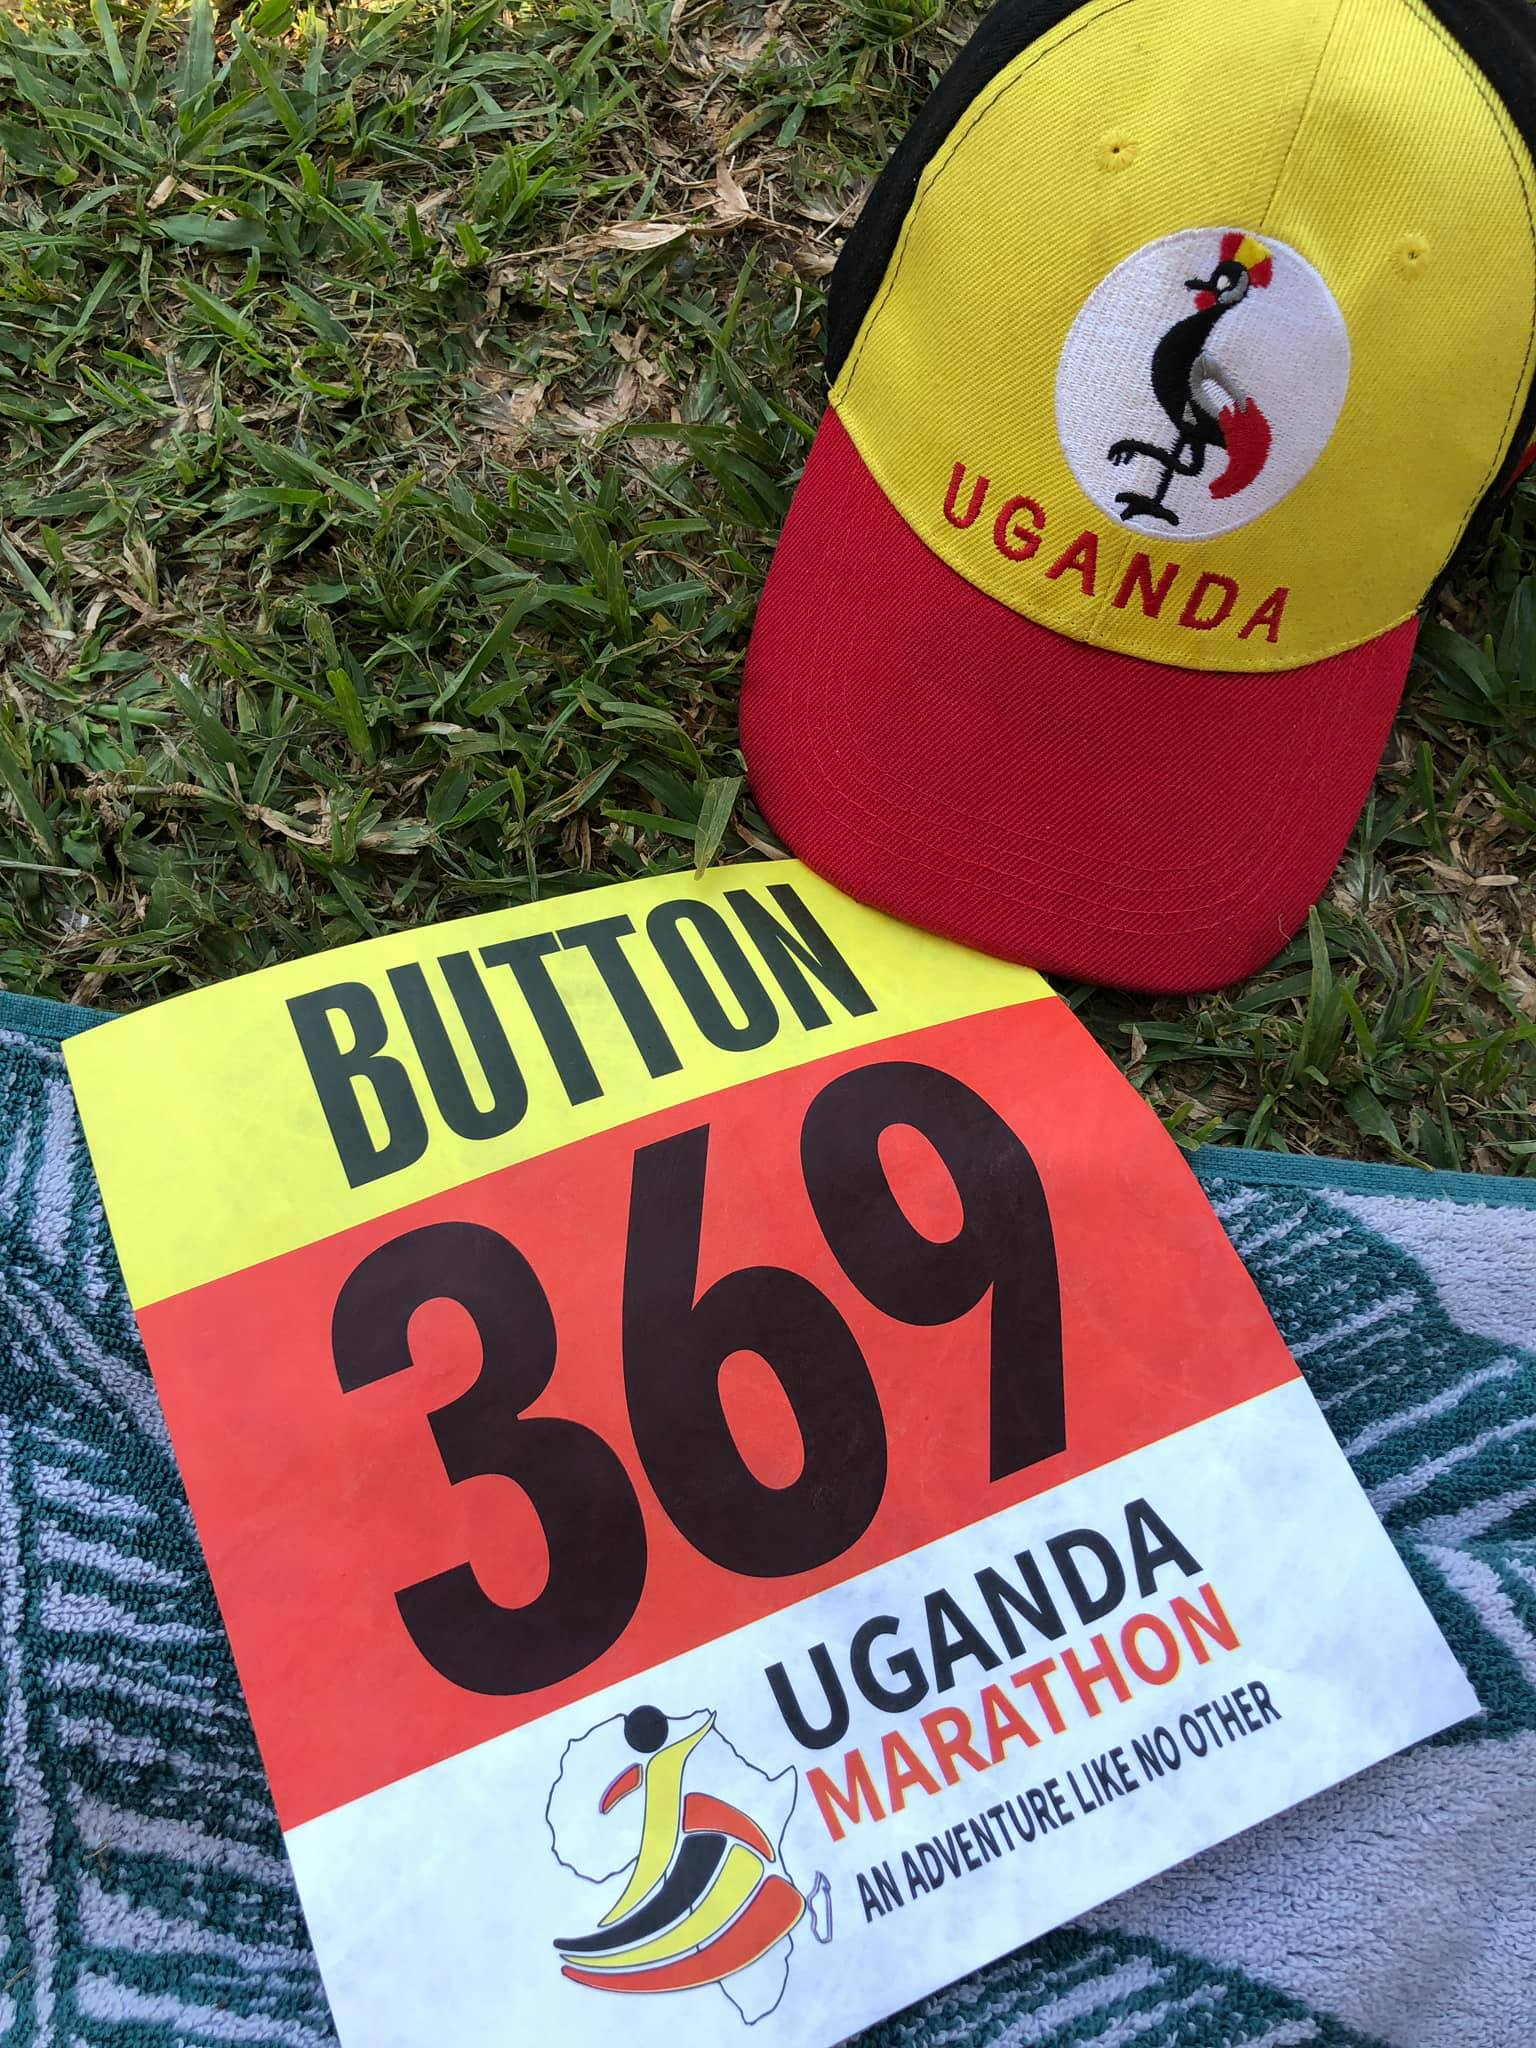 Interview with a UGM Runner: Jean-Louis Button